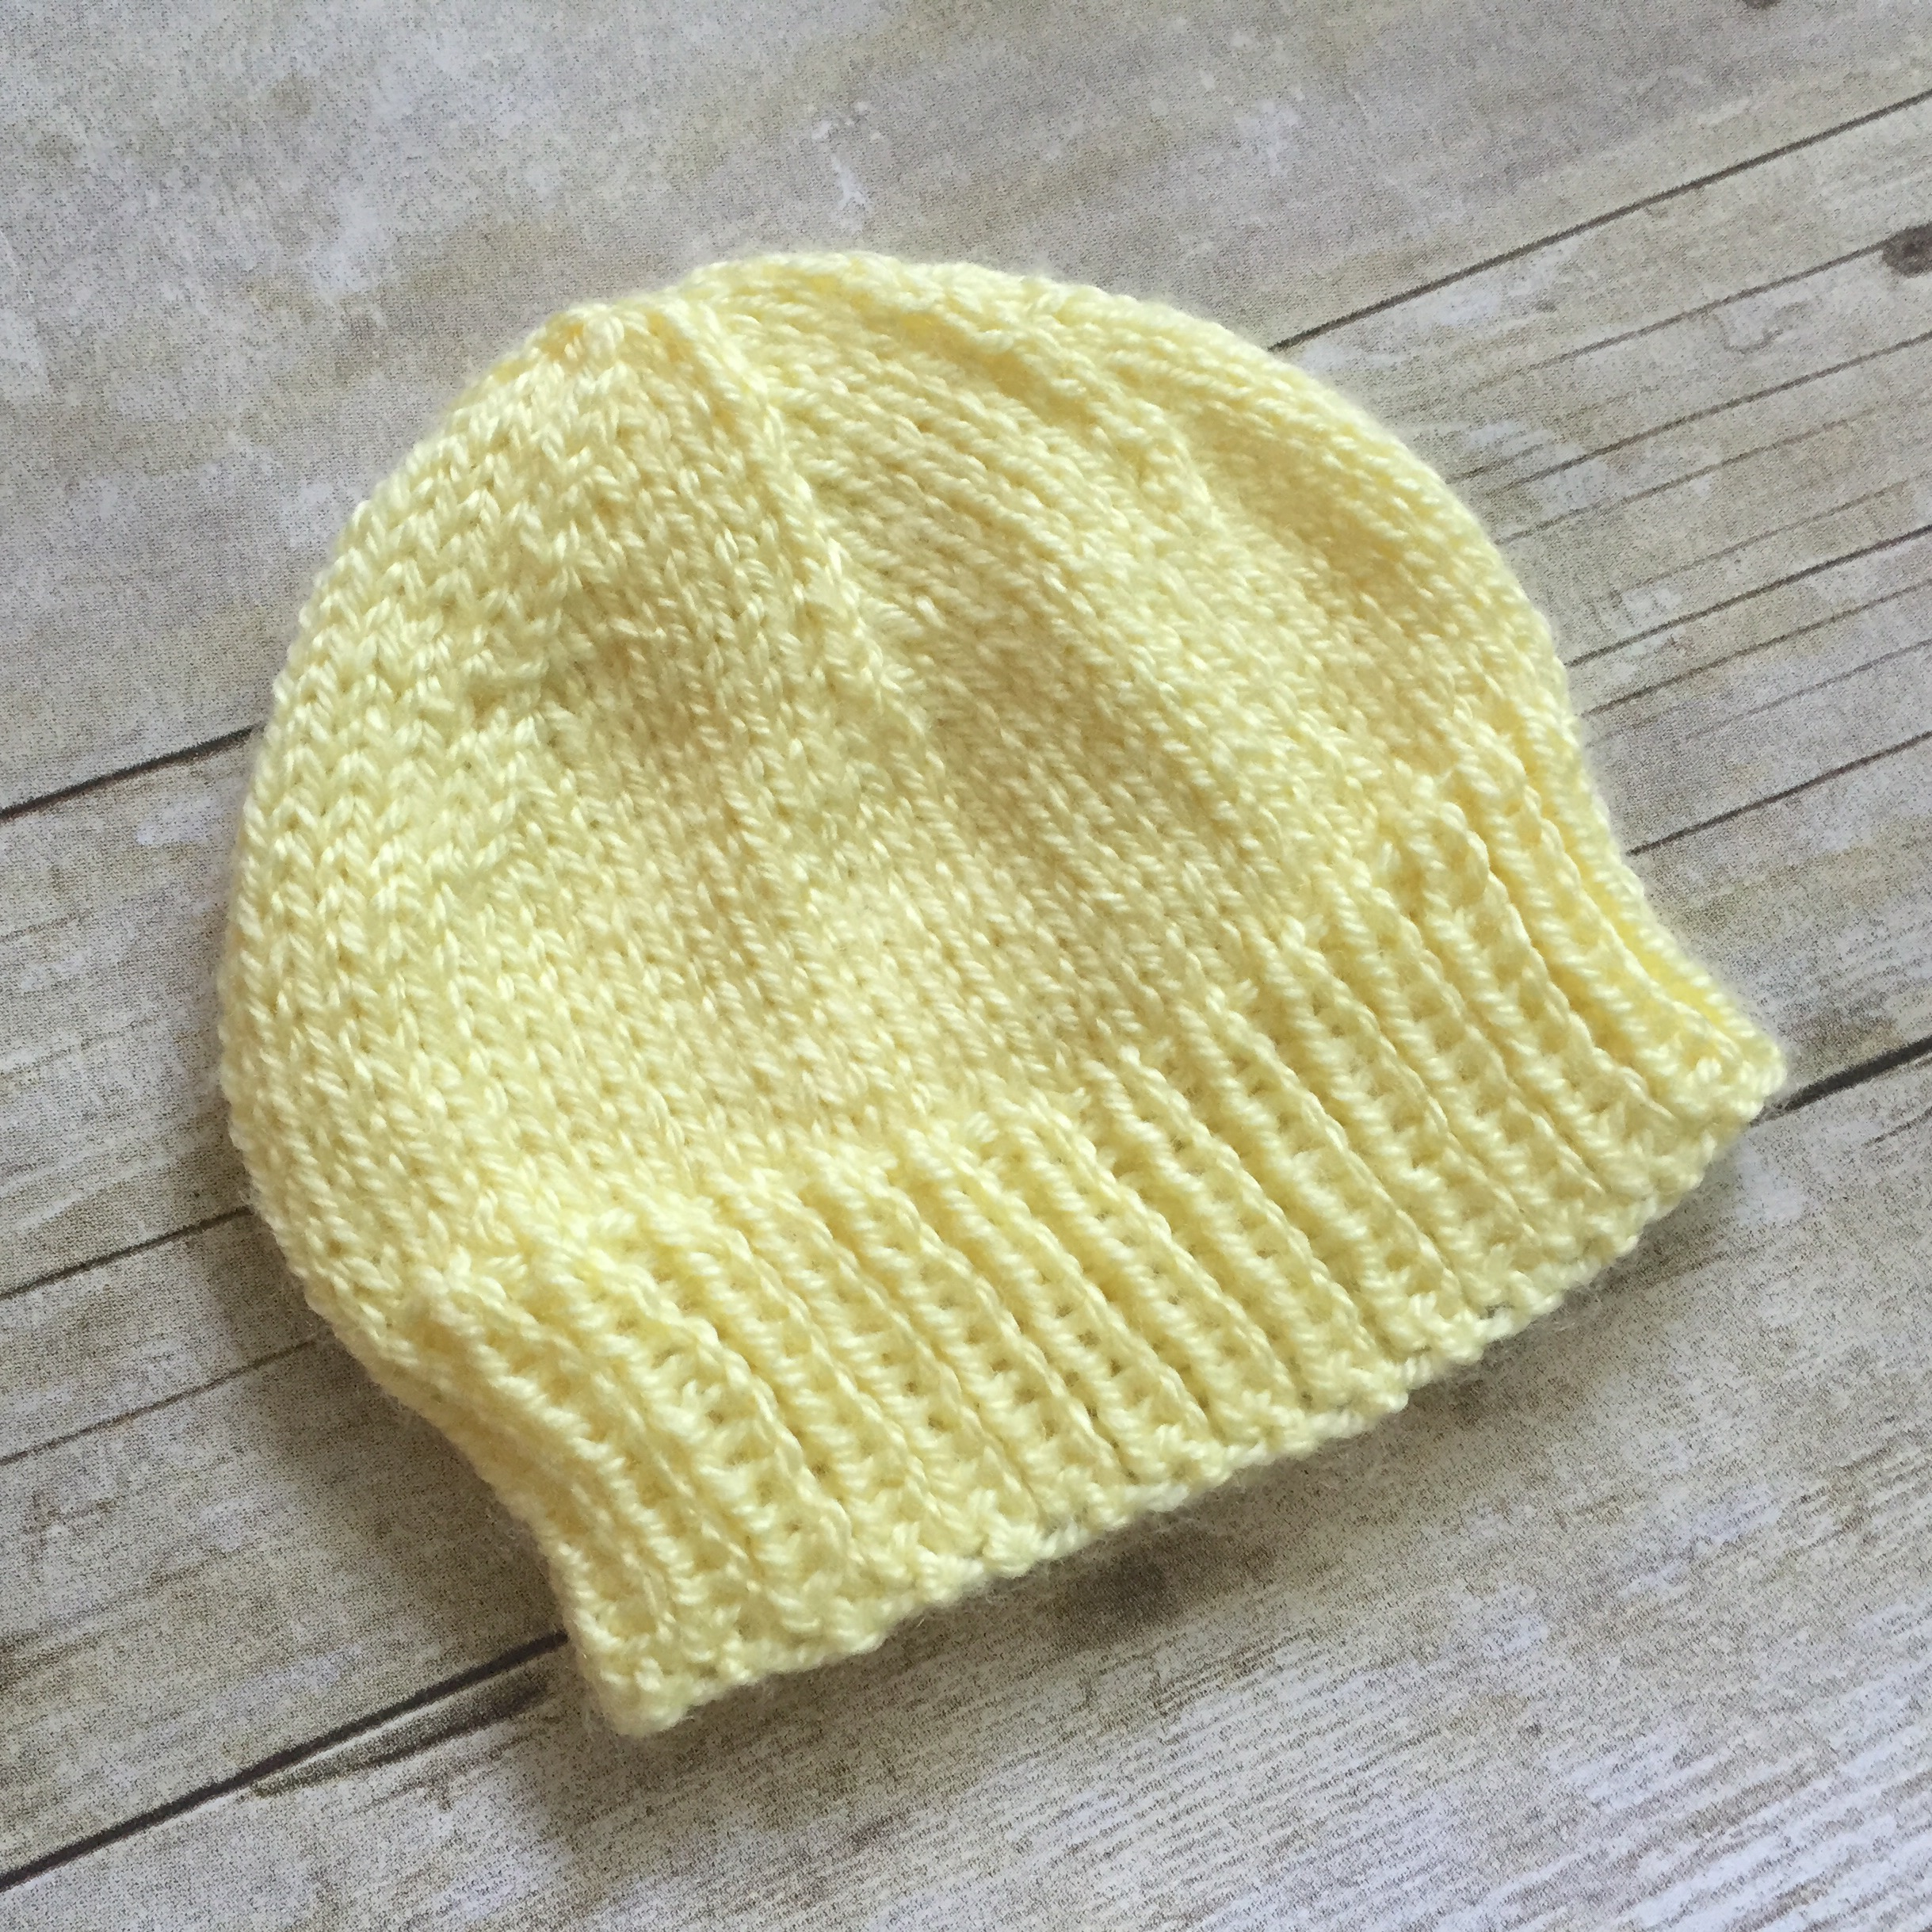 Newborn Knit Hat Pattern Free Newborn Ba Hat To Knit Free Knitting Pattern Swanjay